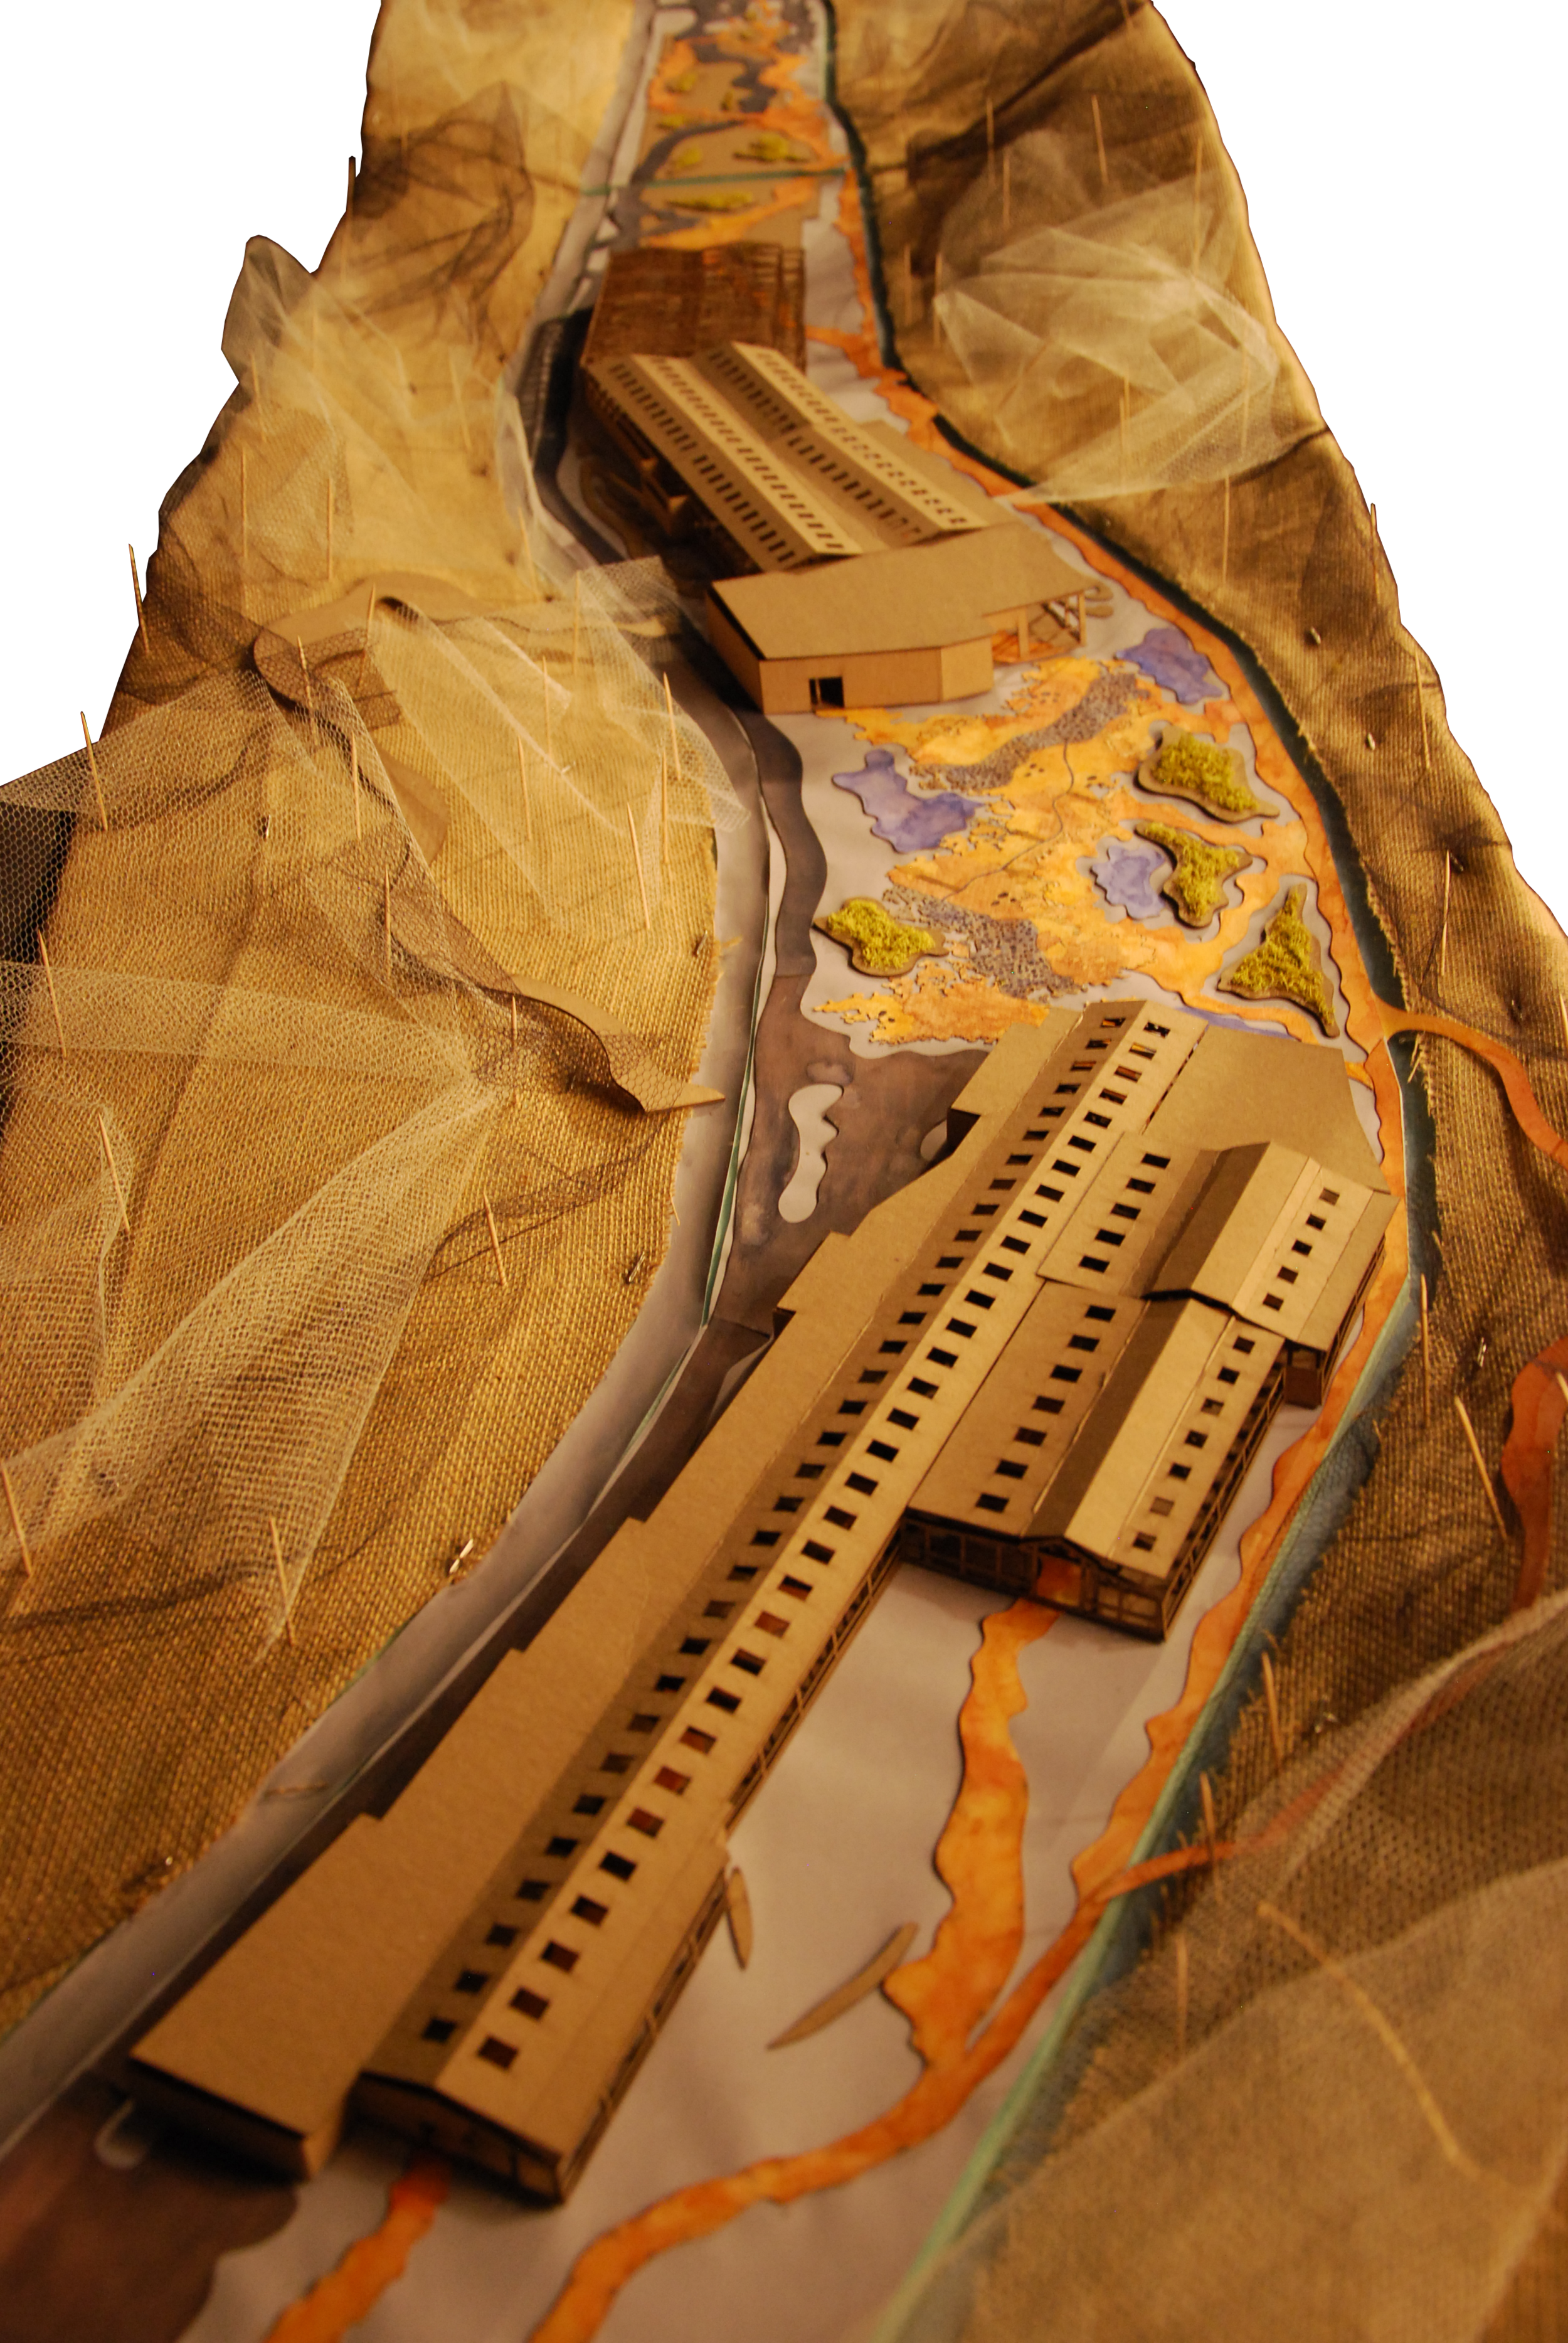 FINAL PHYSICAL SITE MODEL